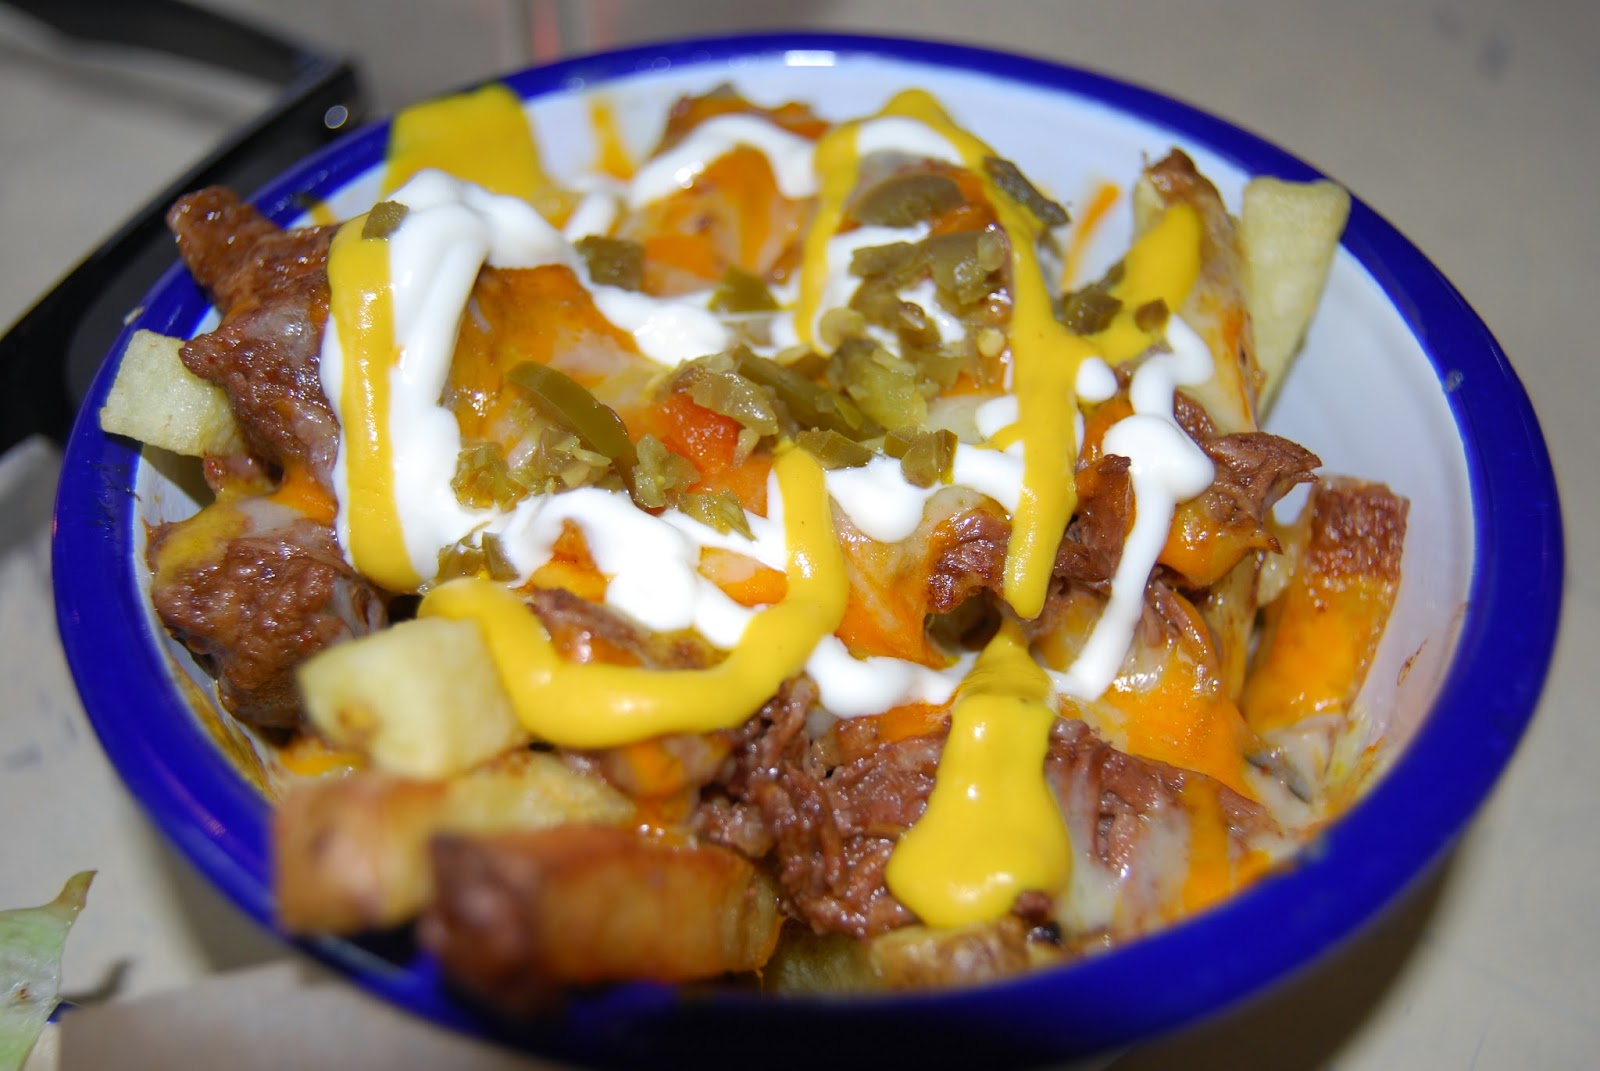 fries, pulled beef, sour cream, jalapeno